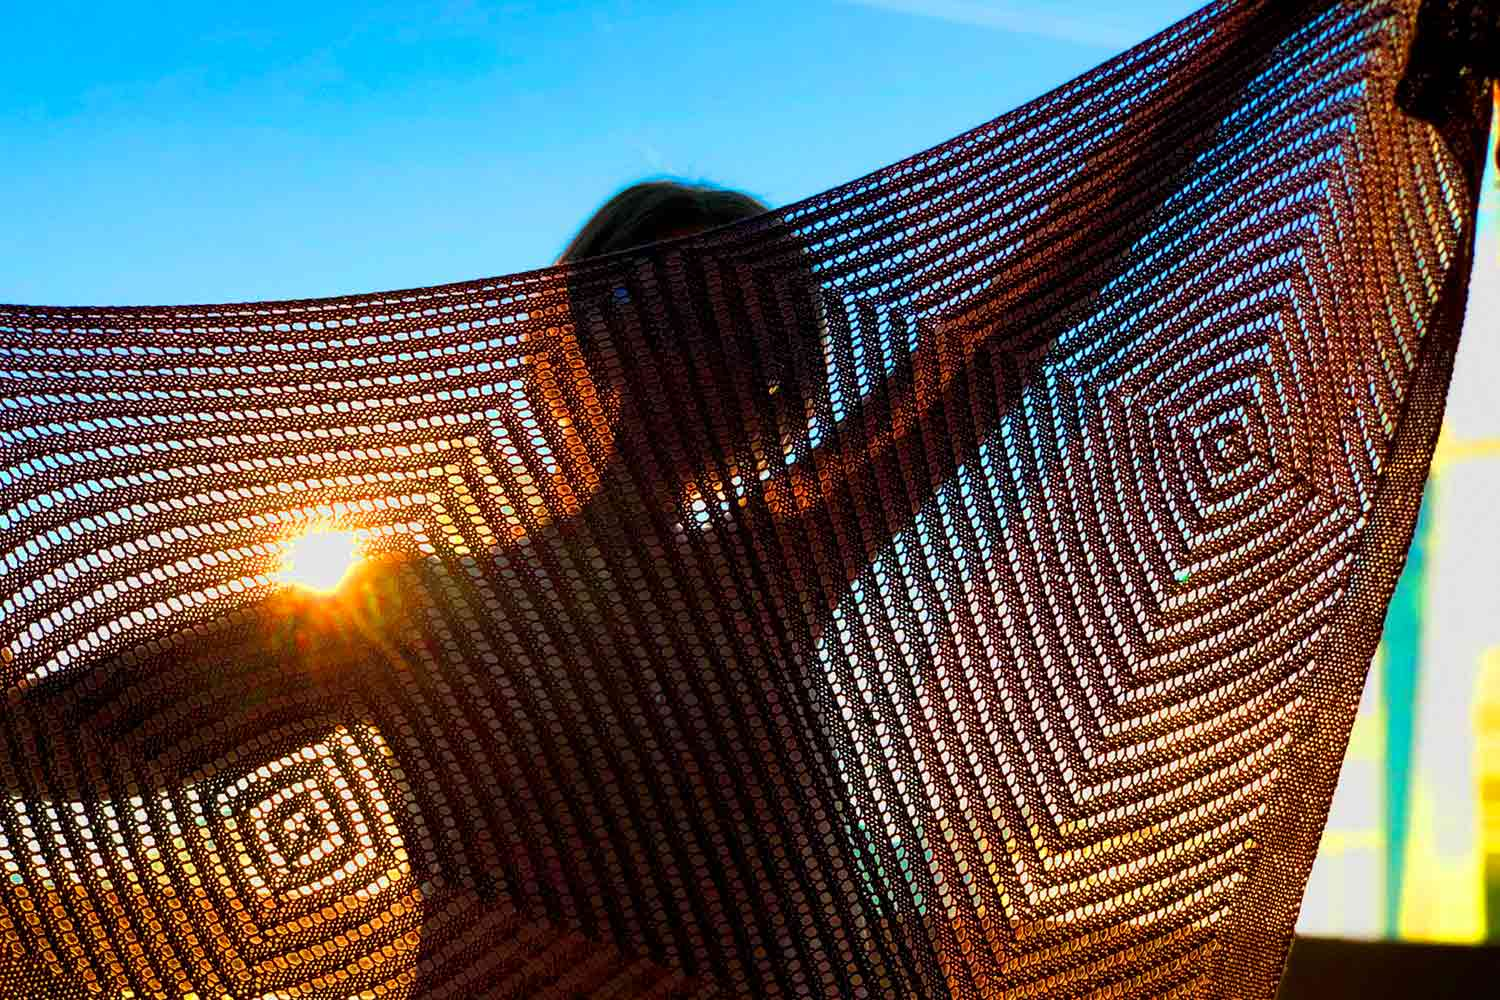 Person holding up a triangular shawl with sunlight shining through it highlighting the concentric squares created by the eyelet stitch pattern.